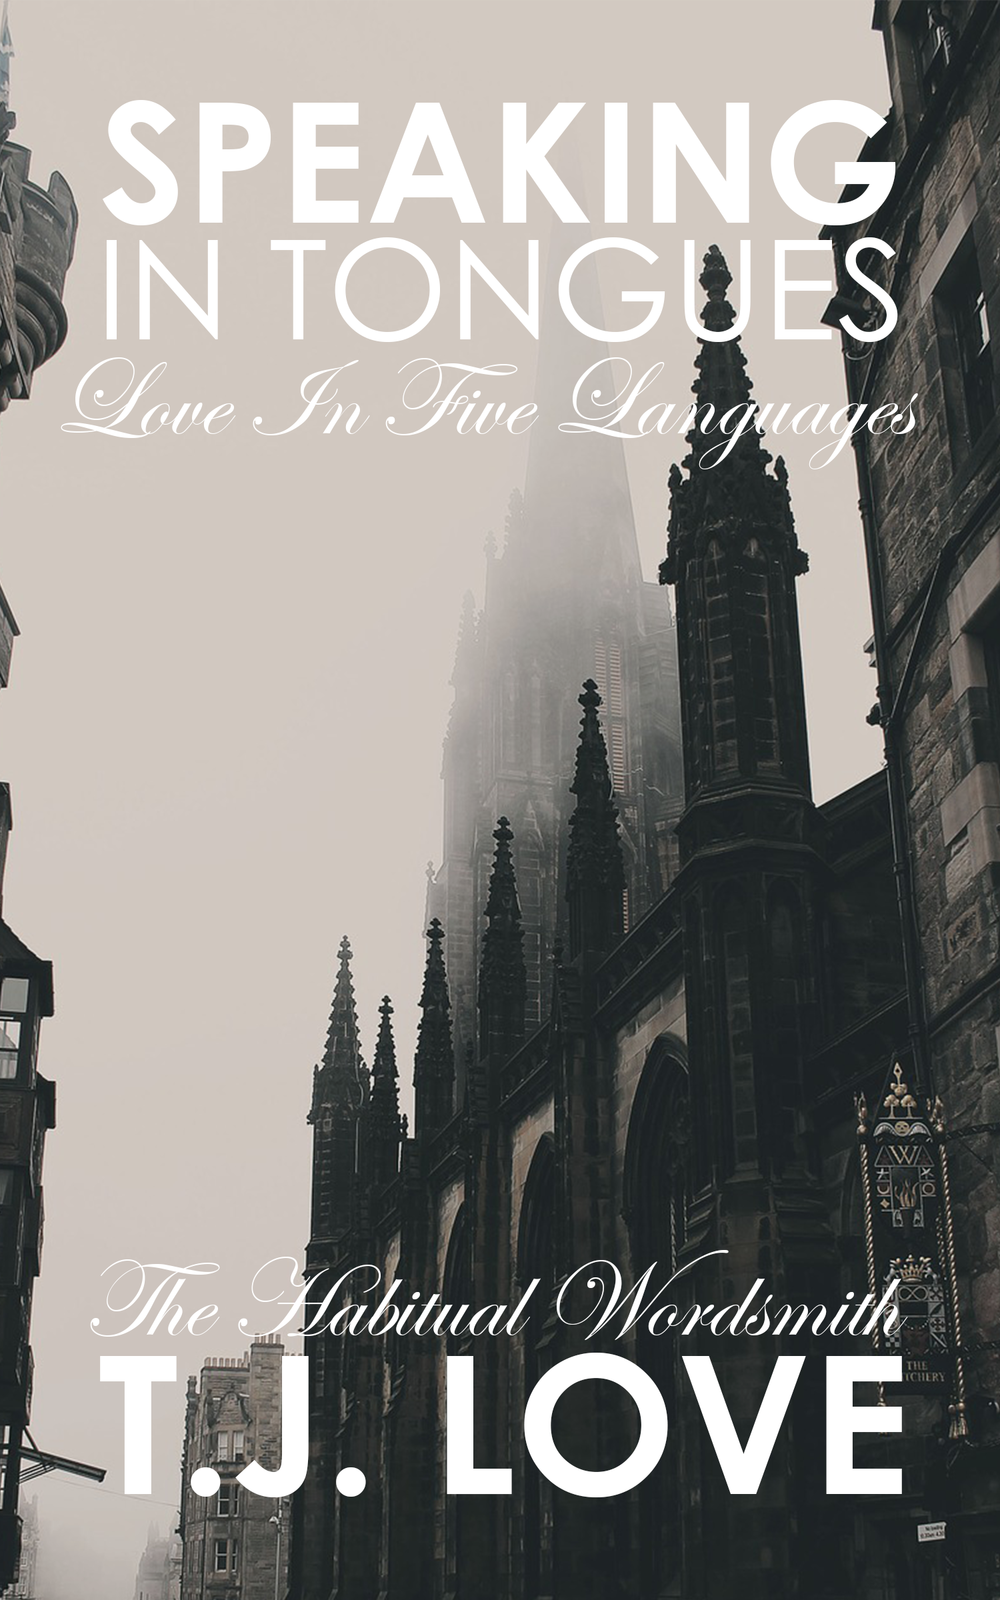 Speaking+In+Tongues+Cover+2.png